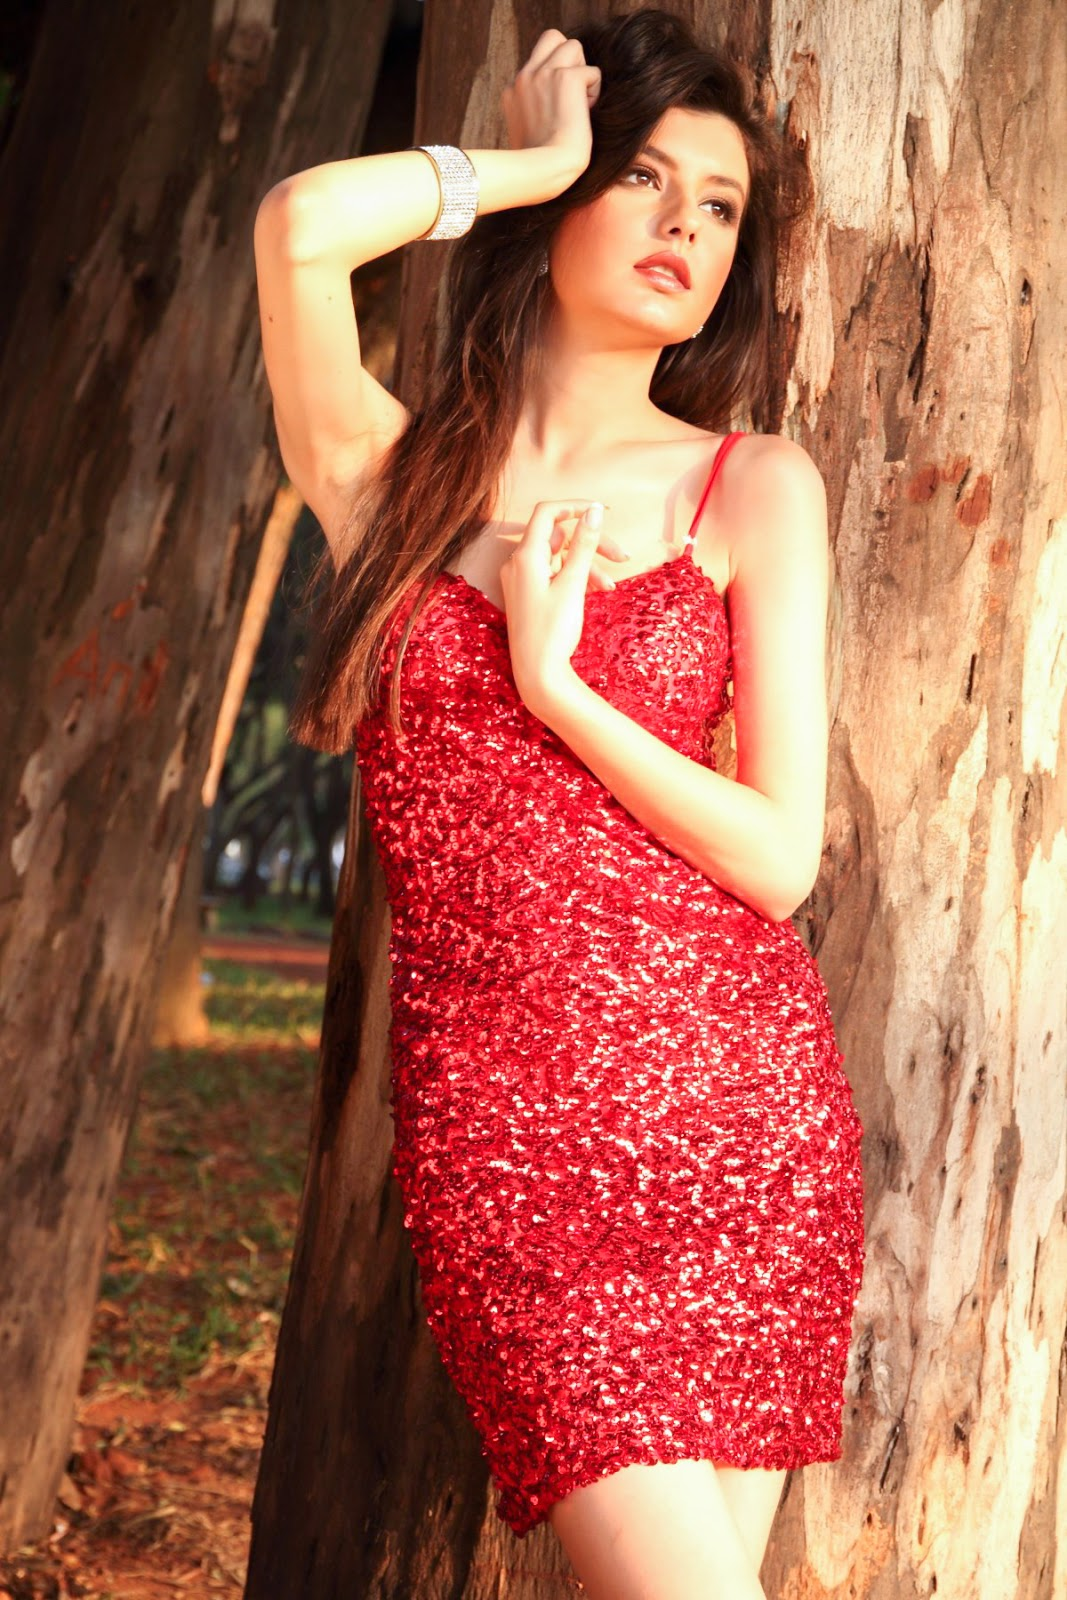 meet singles Start online dating with match uk sign up for free and get access to dating profiles of singles, take the opportunity to attend match singles nights and other dating events near you.